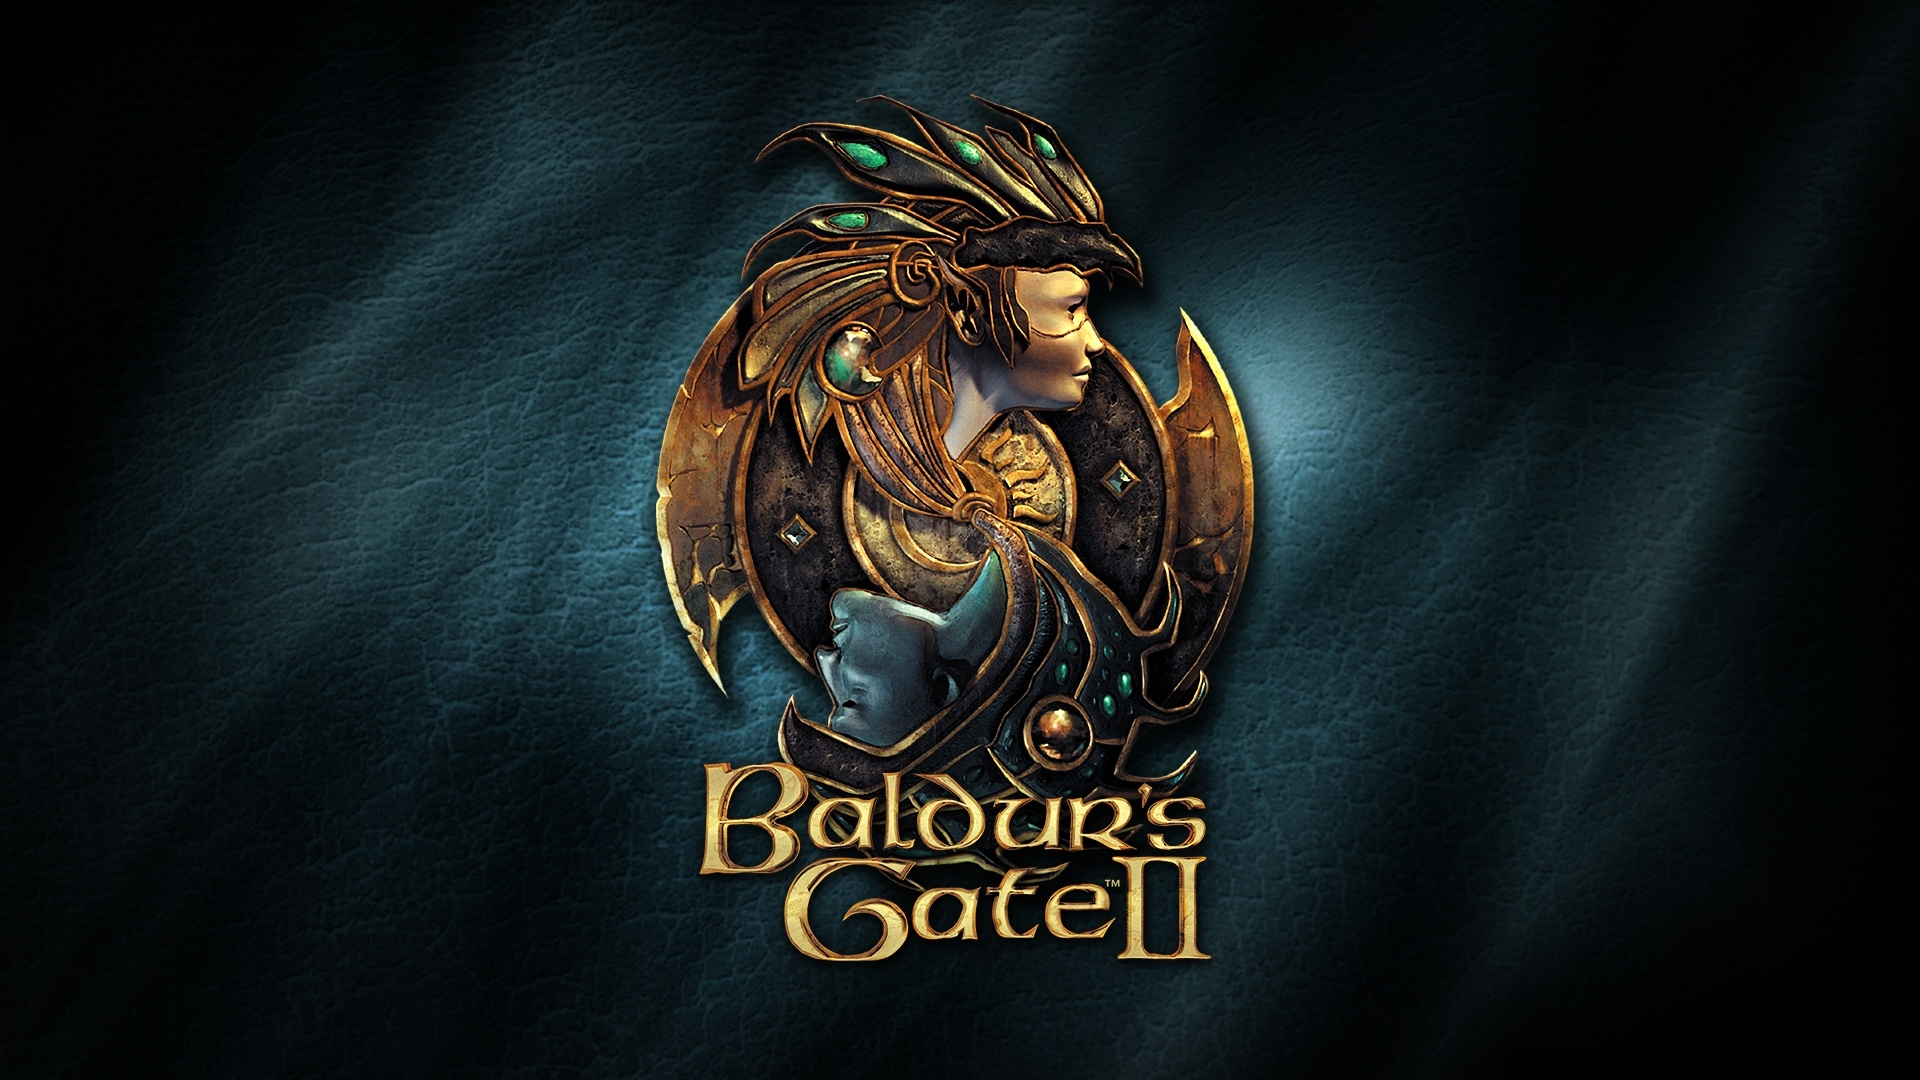 Baldur's Gate 2 : Shadows of Amn Throne of Baal